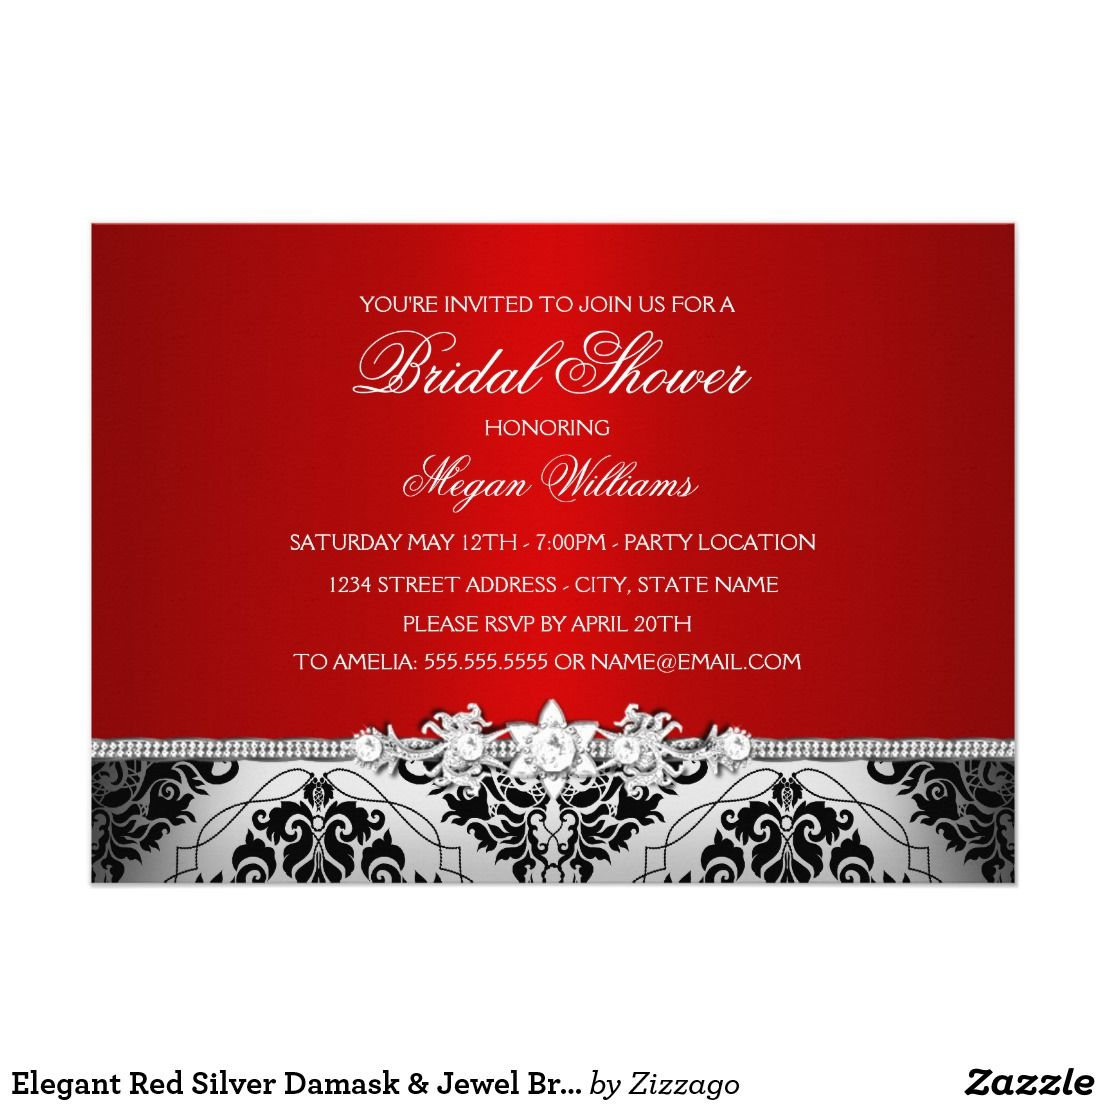 Elegant Red Silver Damask & Jewel Bridal Shower Card | Bridal shower ...